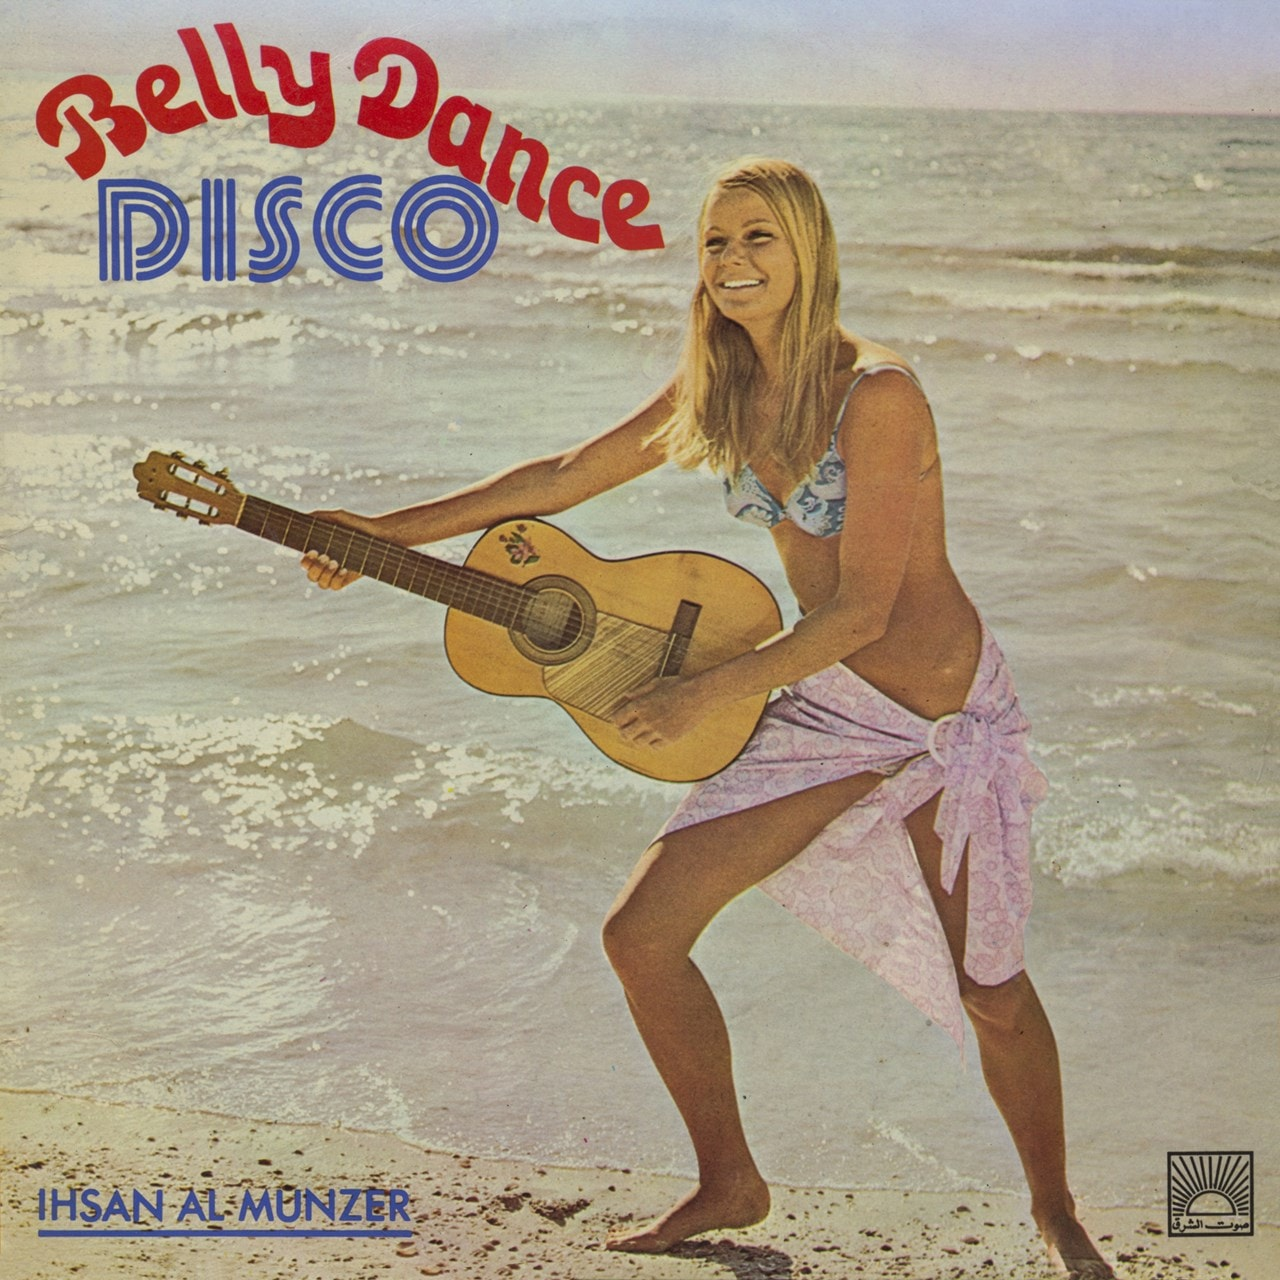 Belly Dance Disco - 1